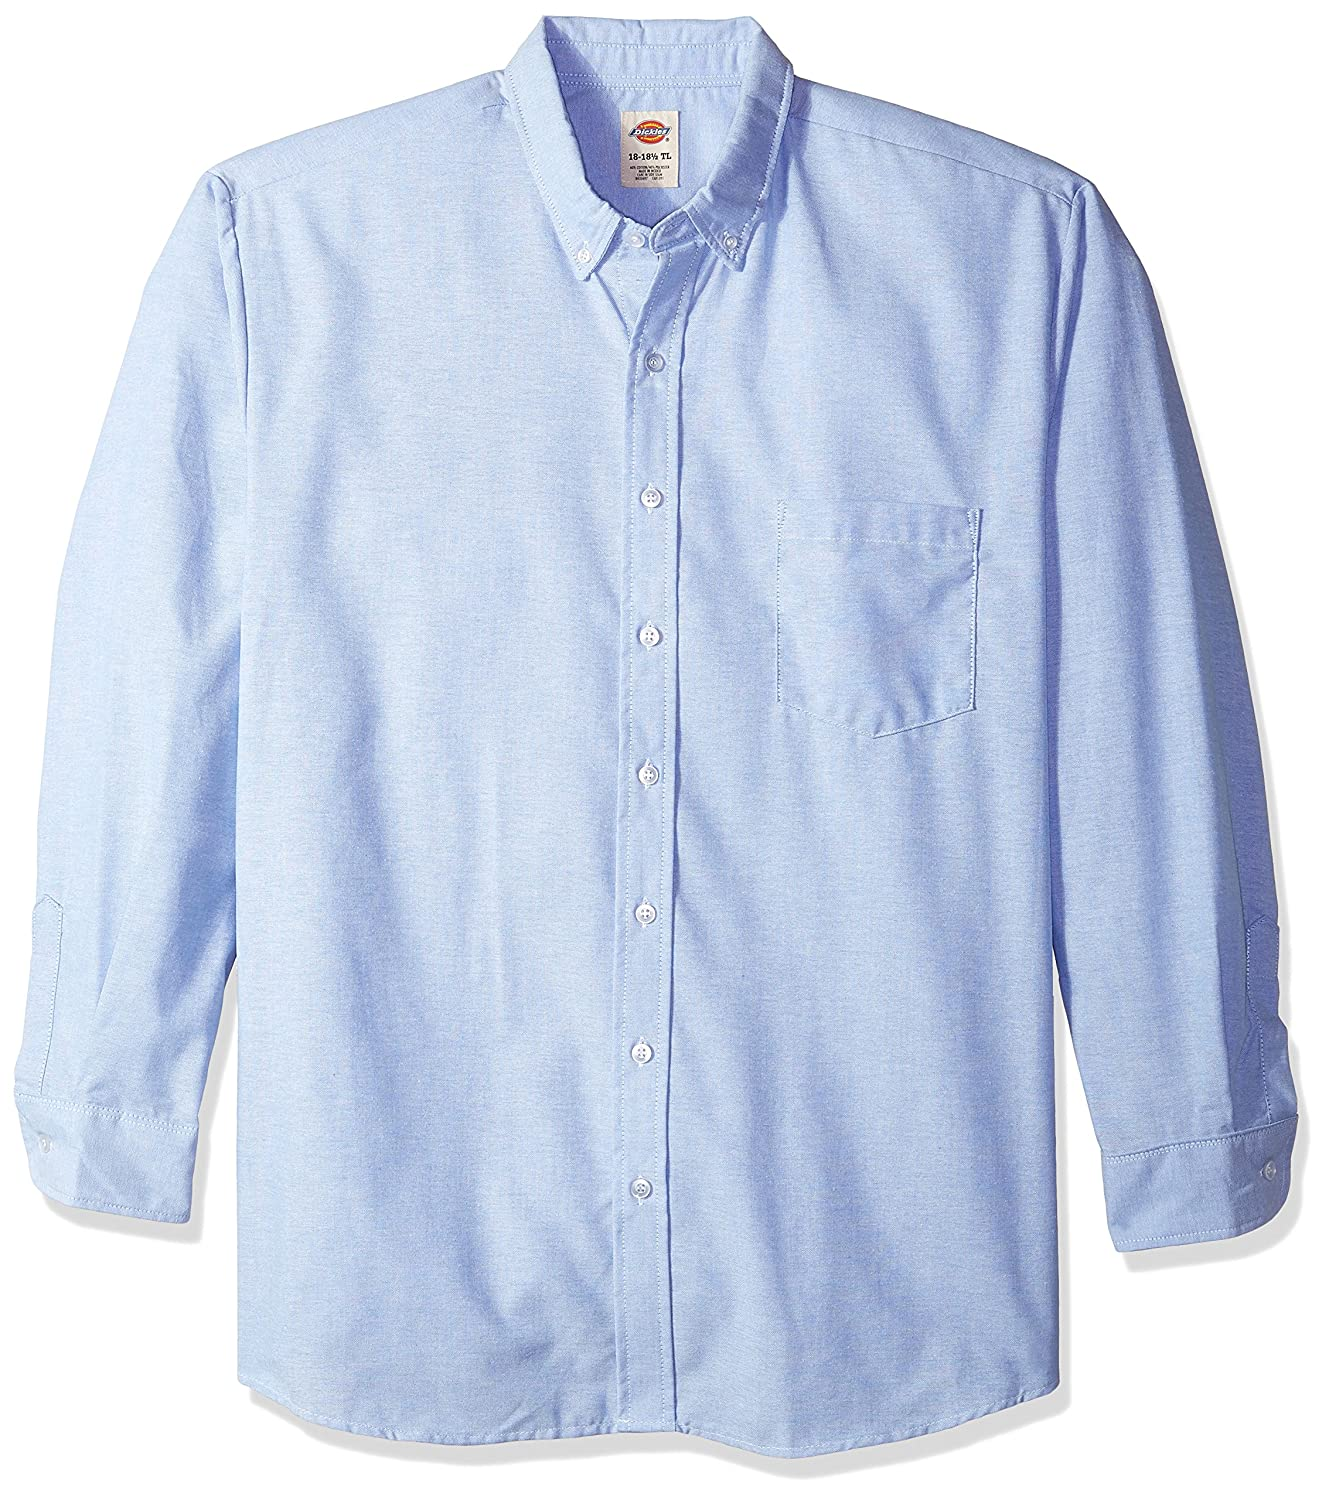 afa2a416518 Top1  Dickies Occupational Workwear Polyester  Cotton Men s Button-Down  Long Sleeve Oxford Shirt